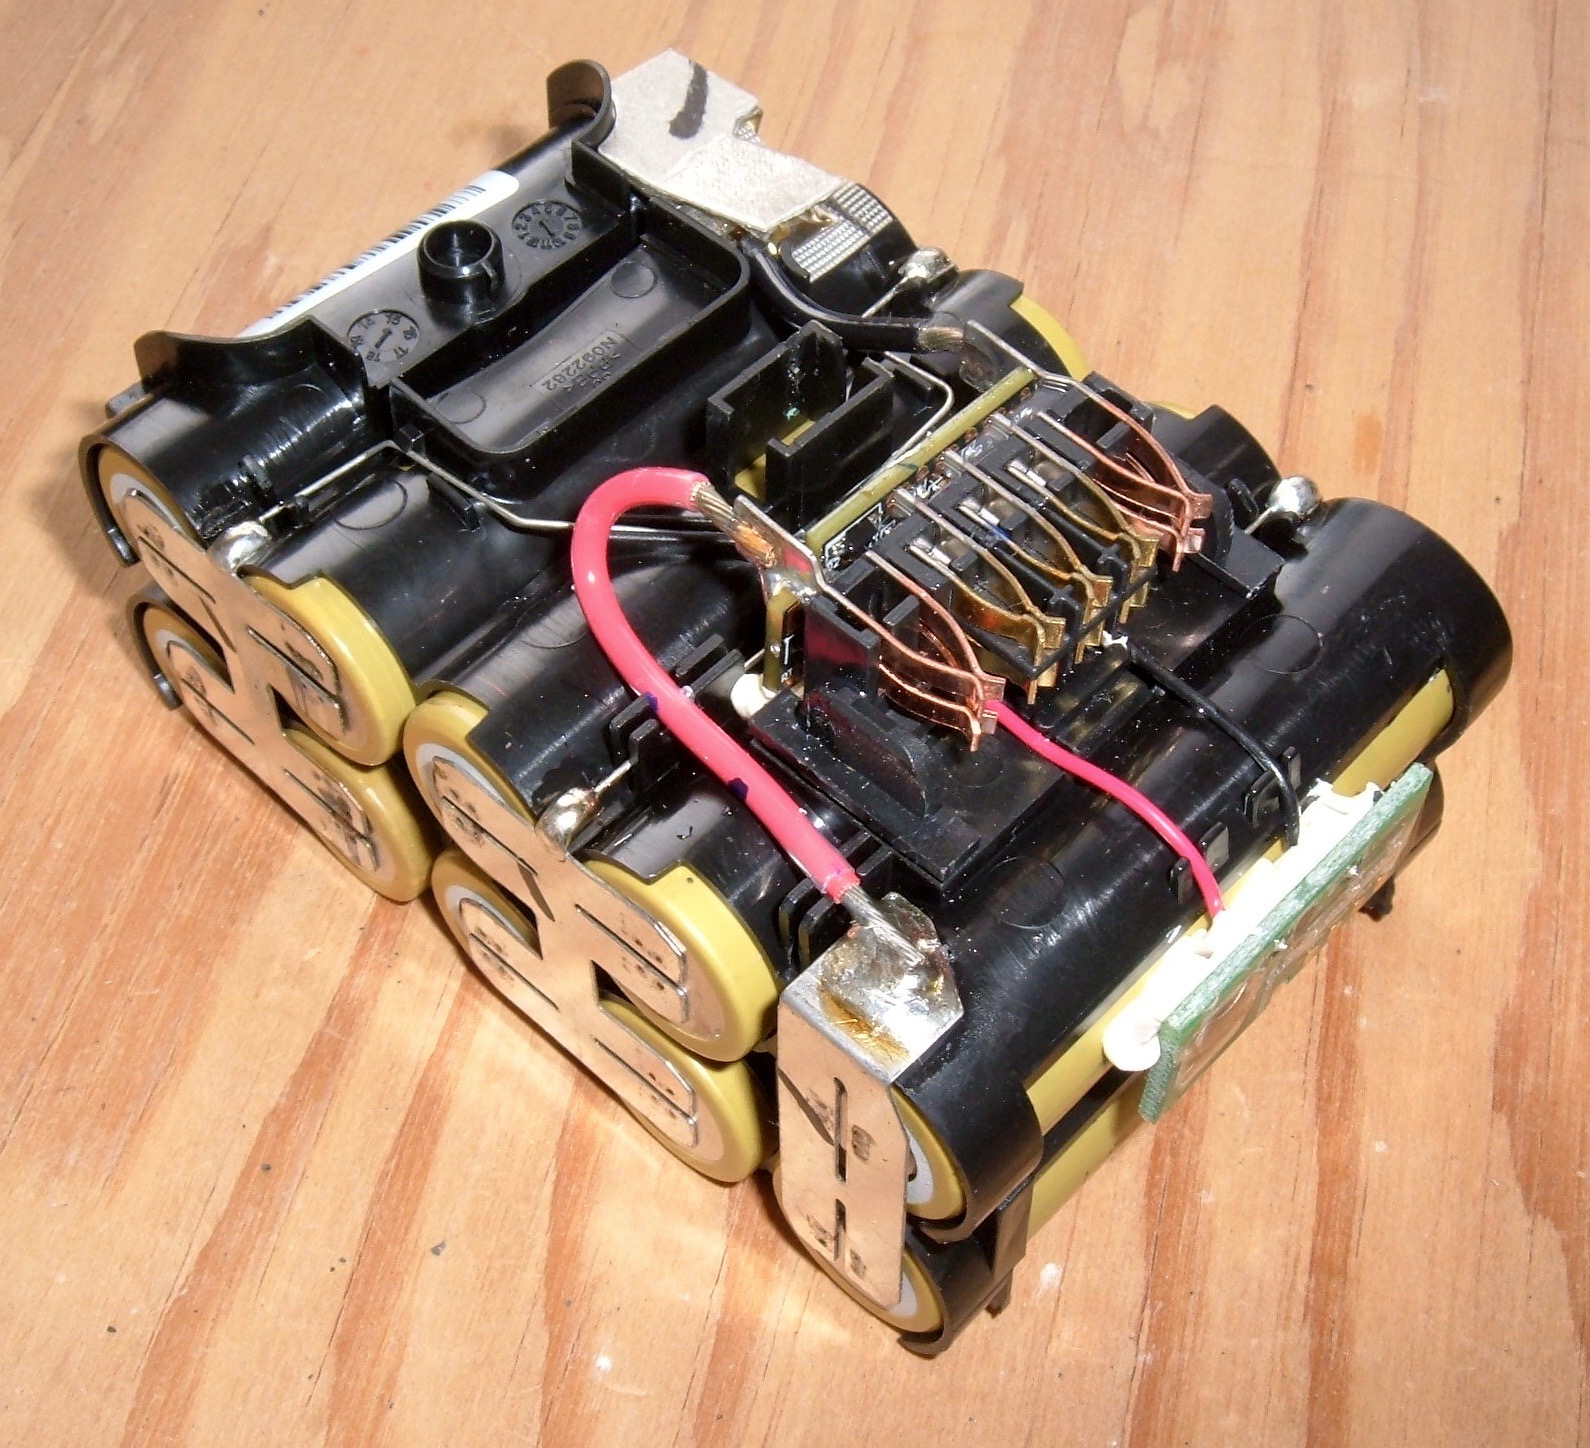 Syonyks Project Blog Dewalt 20v Max 30ah Battery Pack Teardown The Kill Switch Be Hooked Up Positive Or Negative To Led Board Is Secured With Some Sort Of Goop Its Not Going Anywhere